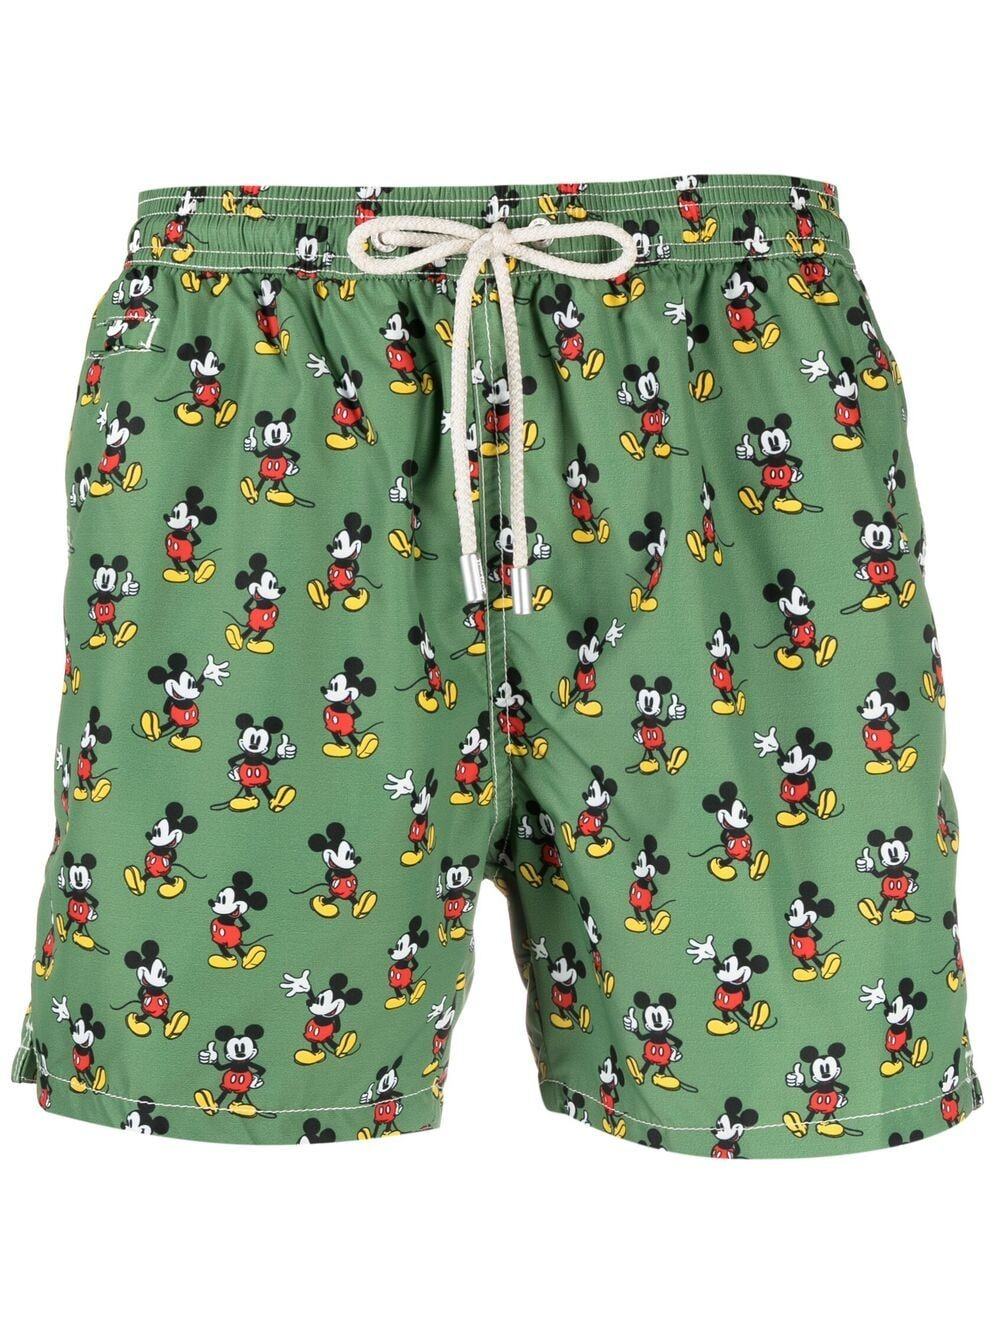 Green recycled polyester Mickey Mouse-print swimming trunks  MC2 |  | LIGHTING MICRO FANTASY-MICKEY LOOP52